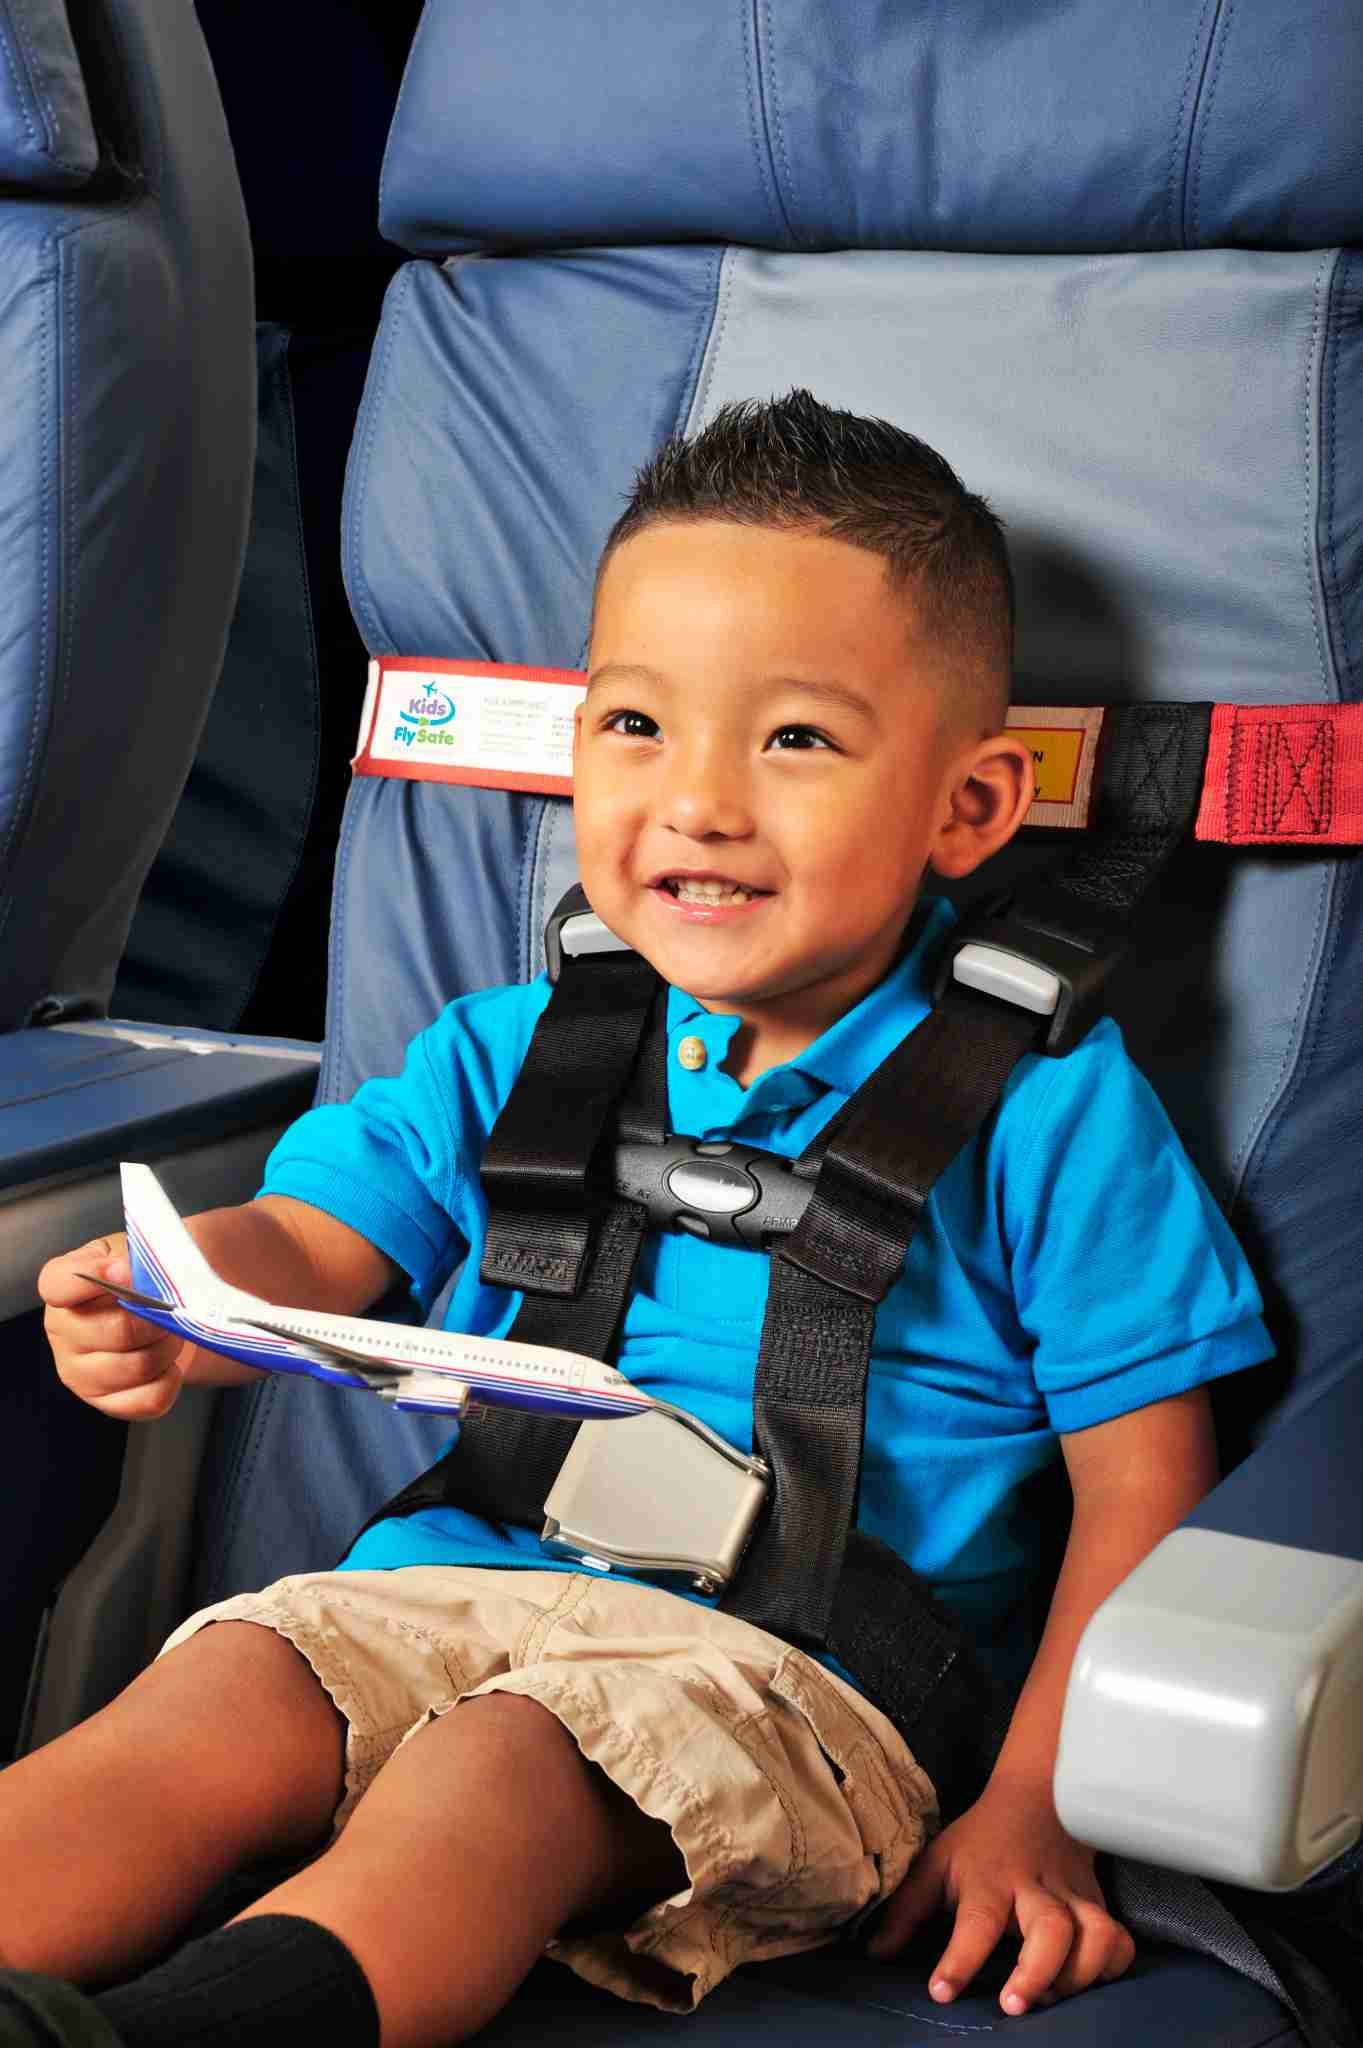 Property installed CARES Harness. (Photo courtesy of Kids Fly Safe)